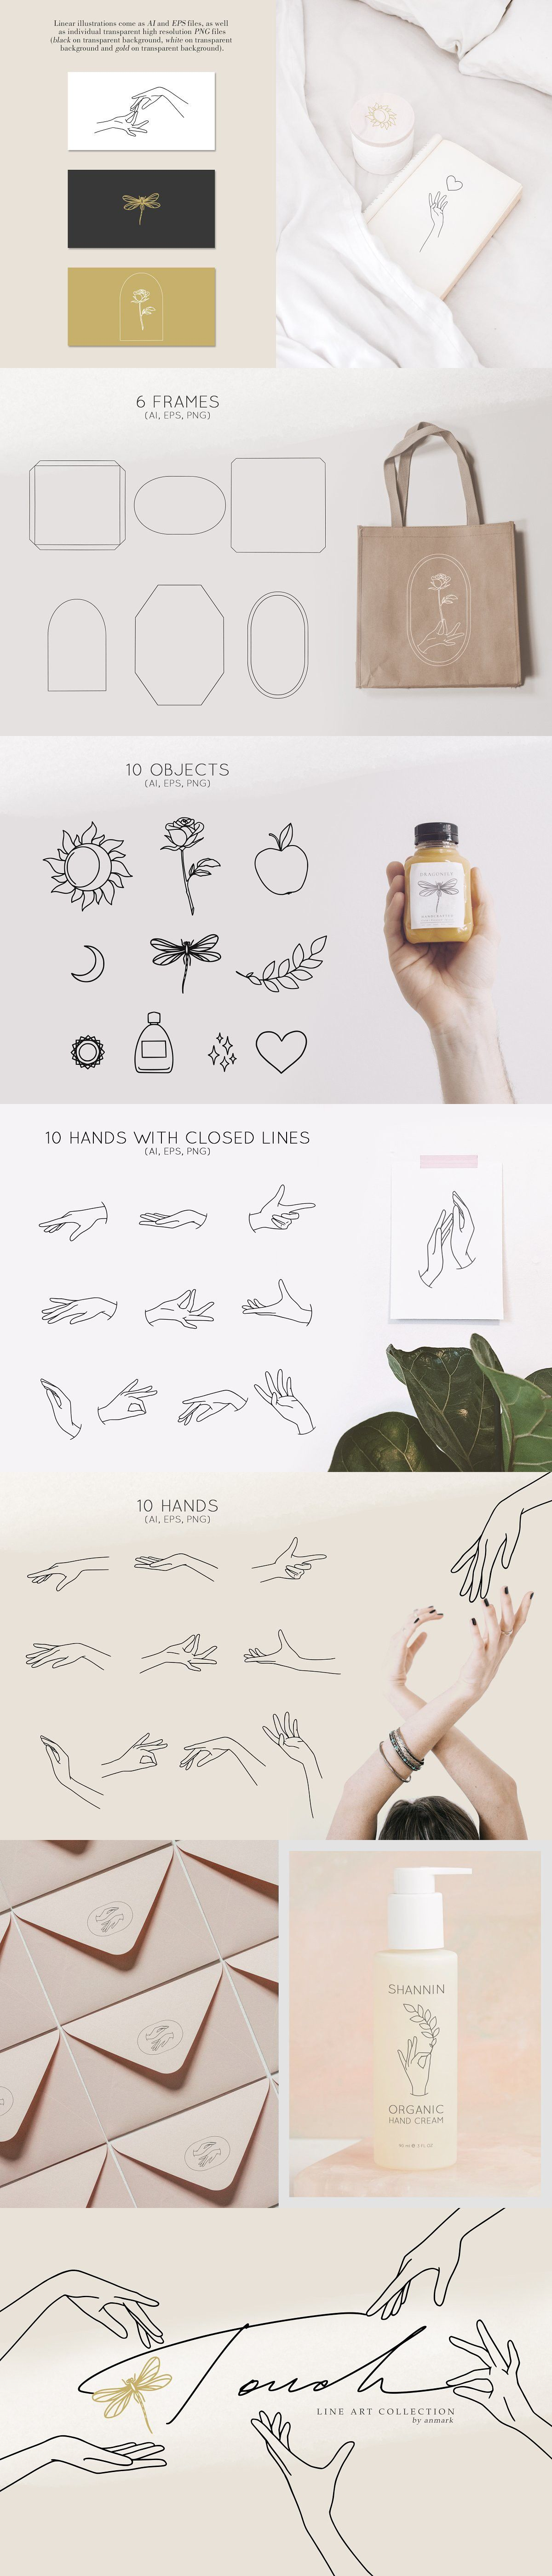 Touch Line Art Collection Line Art Art Art Collection Free icons of line drawing in various ui design styles for web, mobile, and graphic design projects. pinterest